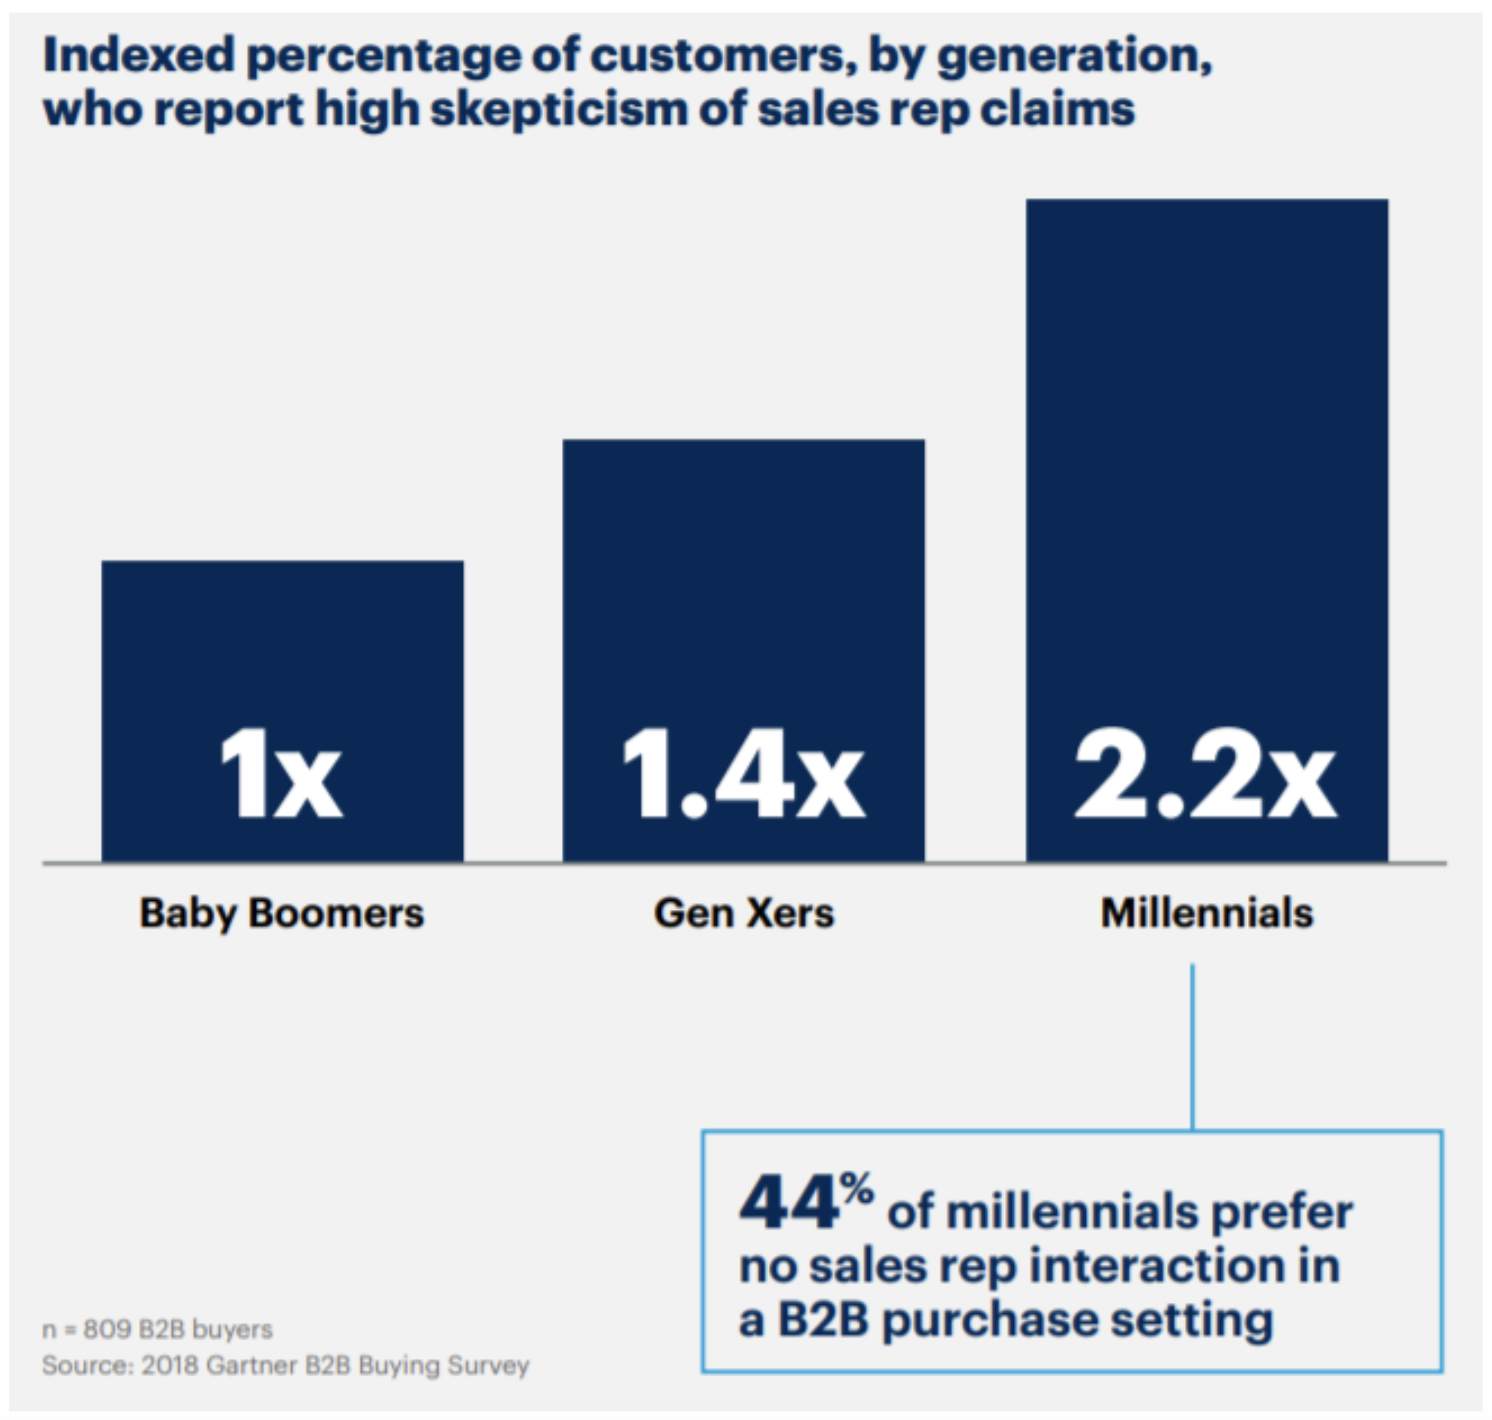 44% of millennials prefer no sales rep interaction in a B2B purchase setting